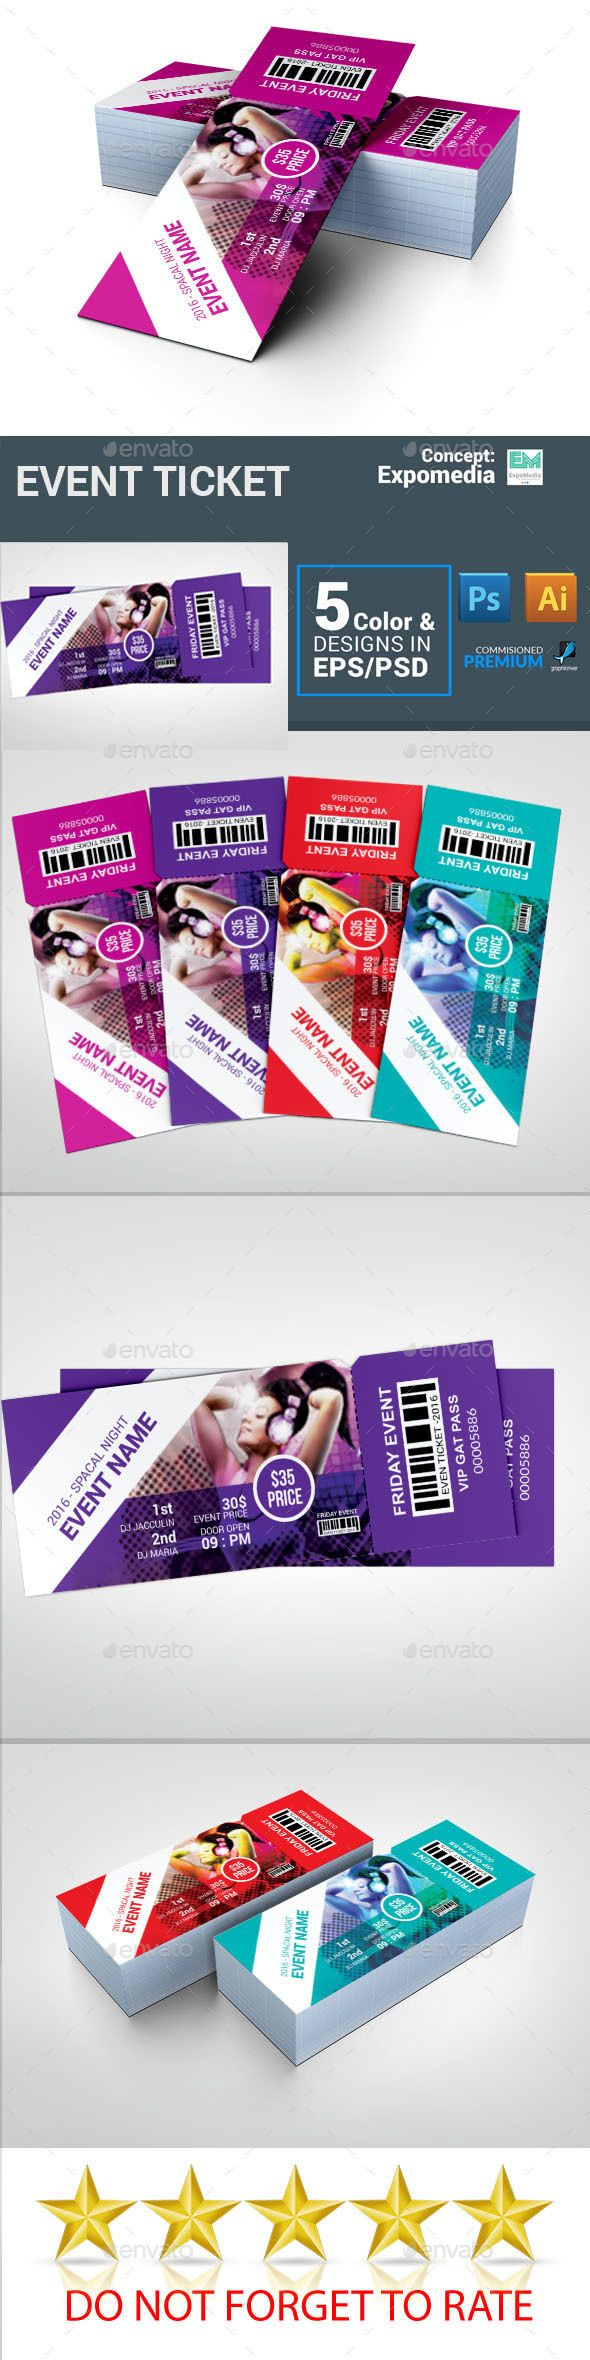 Event Ticket — Photoshop PSD #event tickets #concert • Download ➝ https://graphicriver.net/item/event-ticket/18855088?ref=pxcr